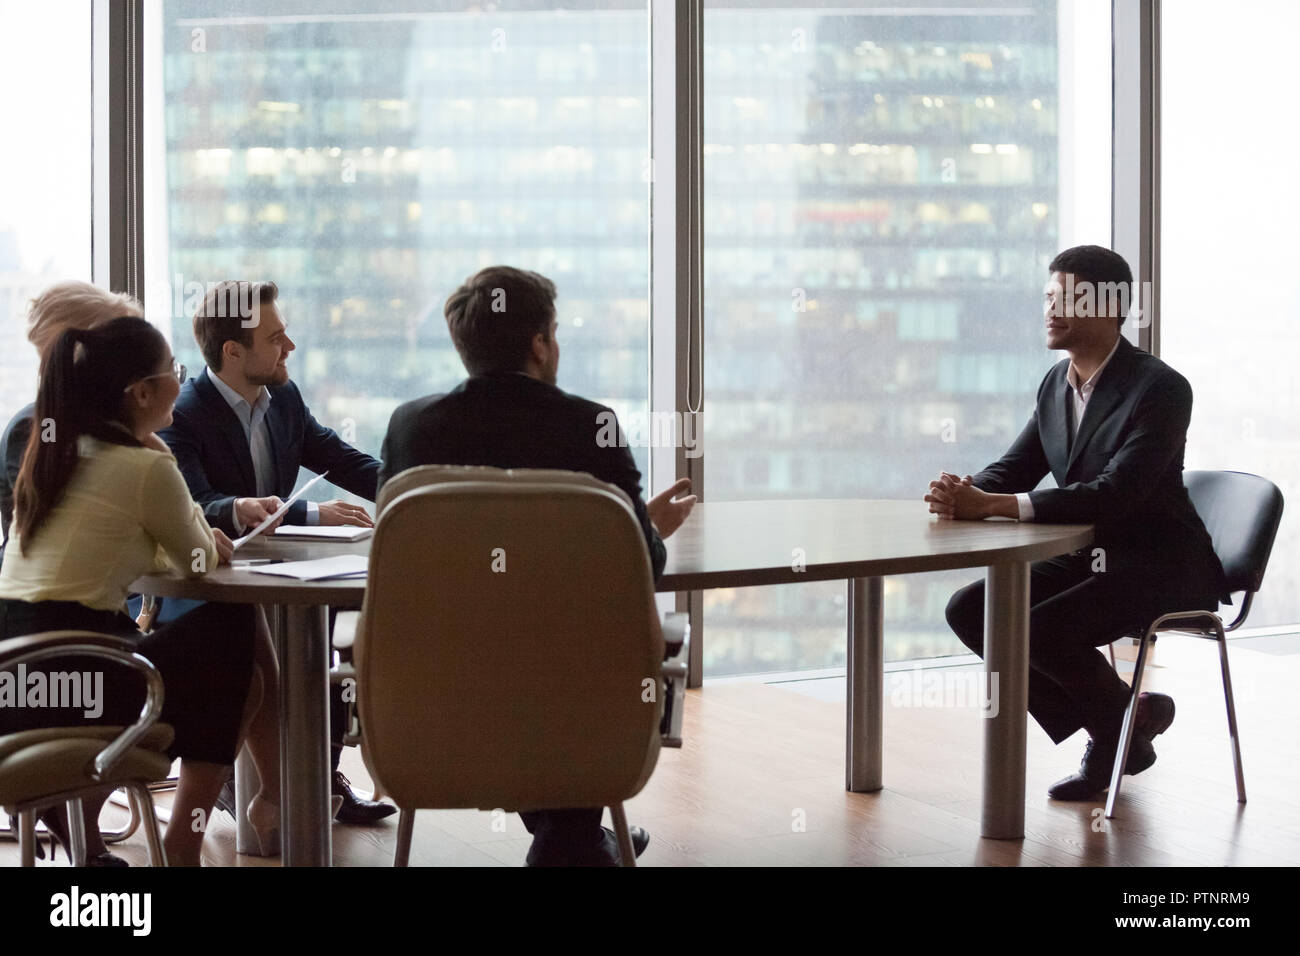 Confident black applicant impress recruiters during interview - Stock Image